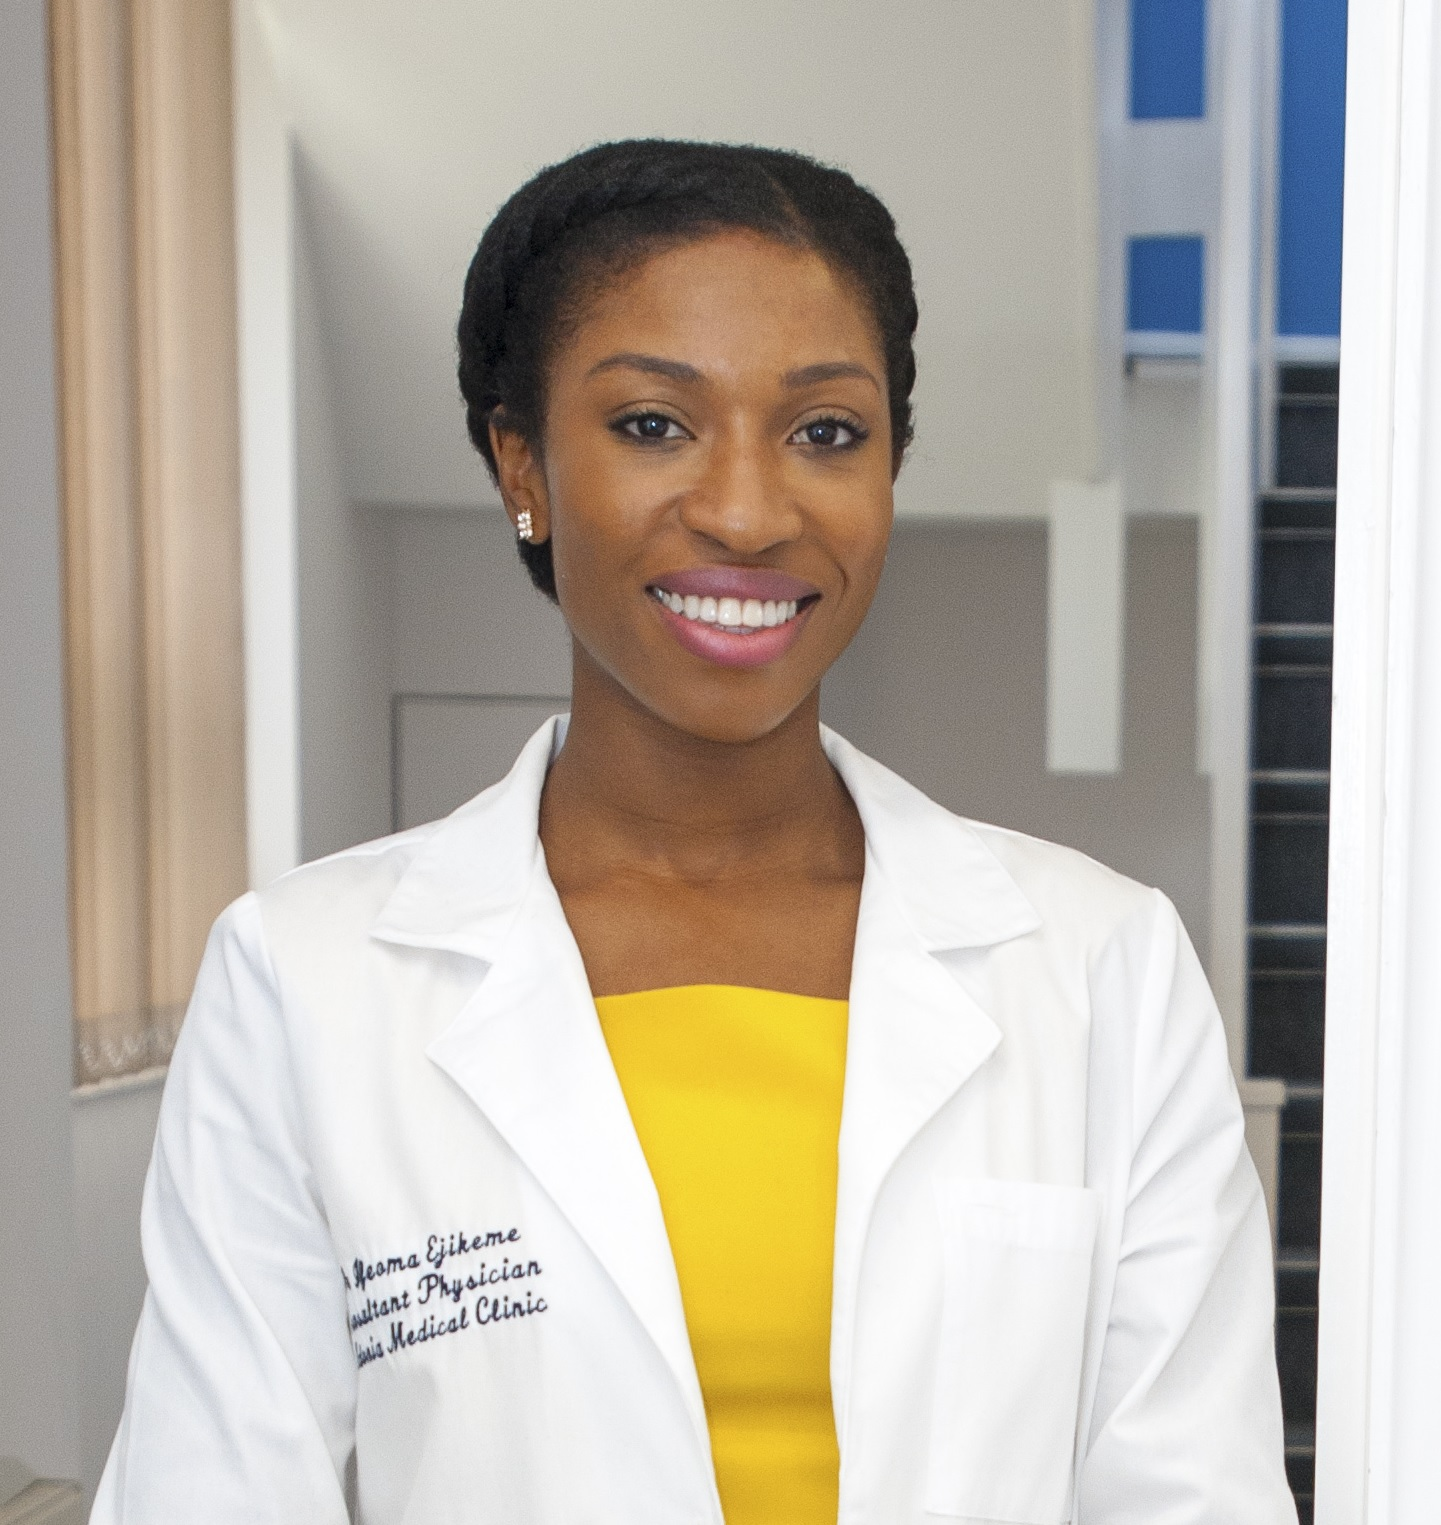 """Dr Ifeoma Ejikeme, Adonia Medical - """"I love the Cane & Austin Glycolic Acid Scrub. Glycolic is an exfoliating acid from sugar cane and this scrub is gentle enough to be used 1-2 times a week. Over time it smoothens the skin and for darker skin it helps to blend skin tone and reduce mild irregularities on the skin. It can also be very helpful in reducing ingrowing hair in the beard area."""""""